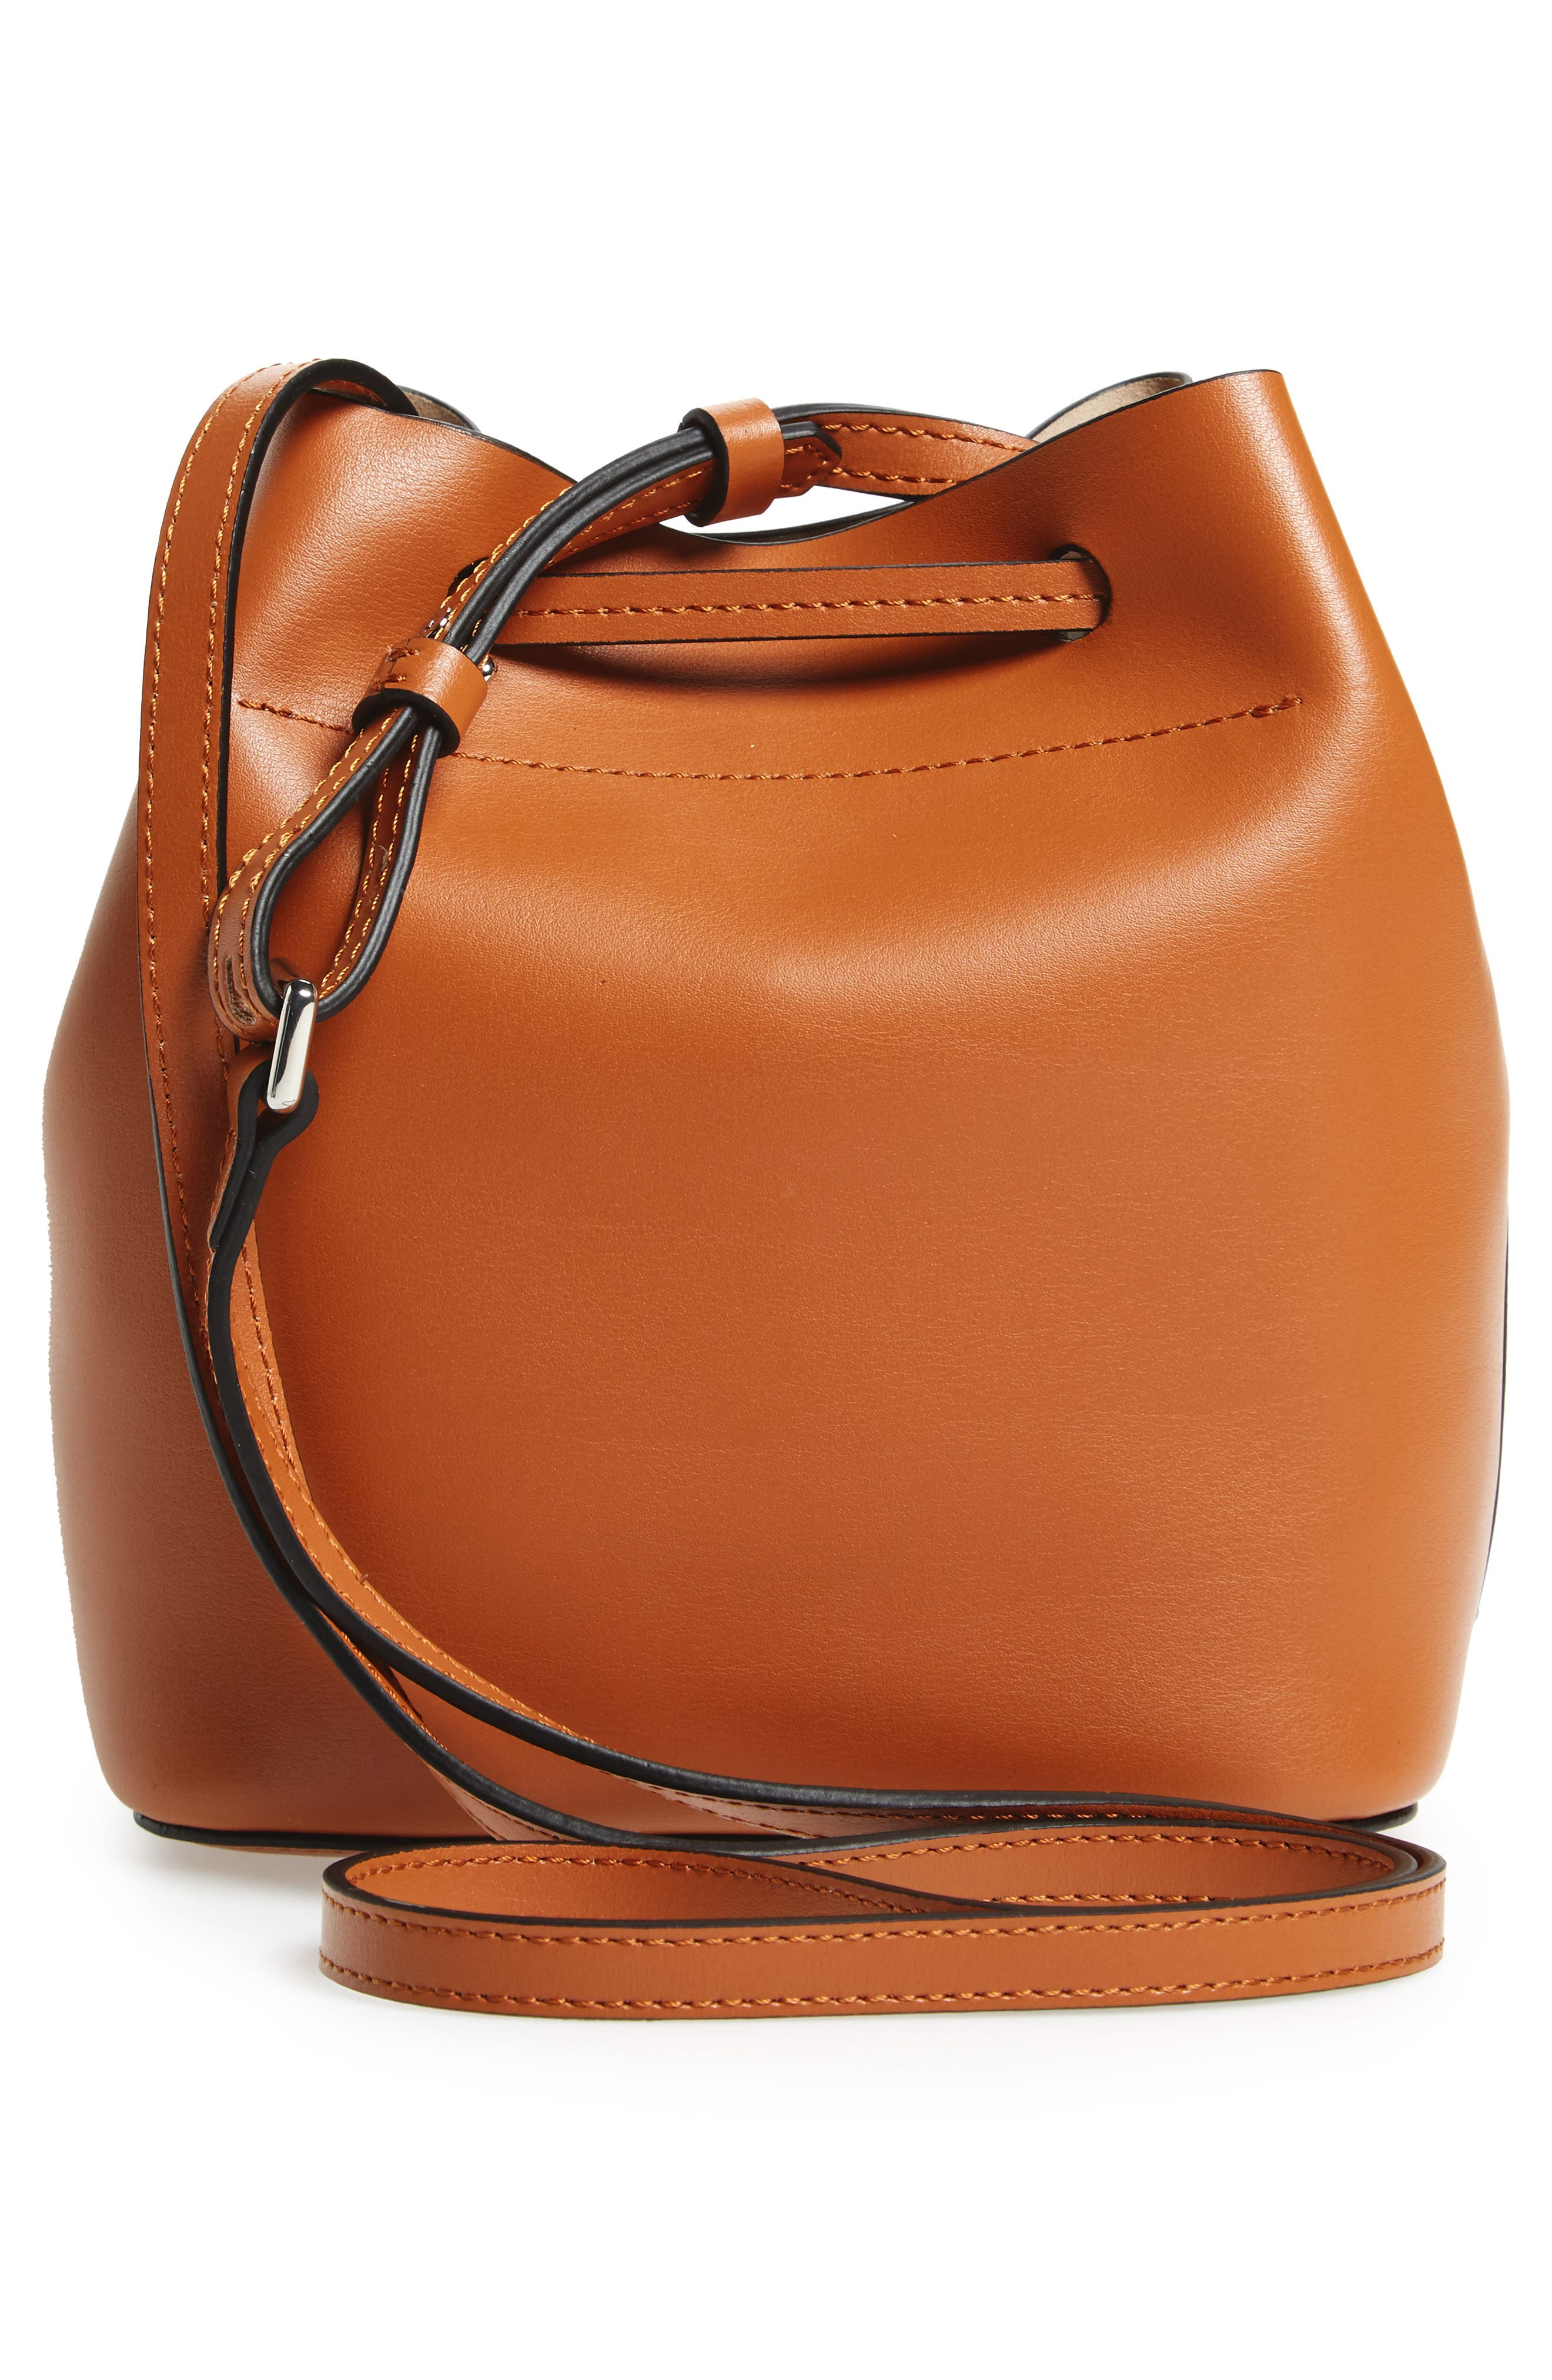 Alternate Image 3  - Lodis Small Silicon Valley Blake RFID Leather Bucket Bag